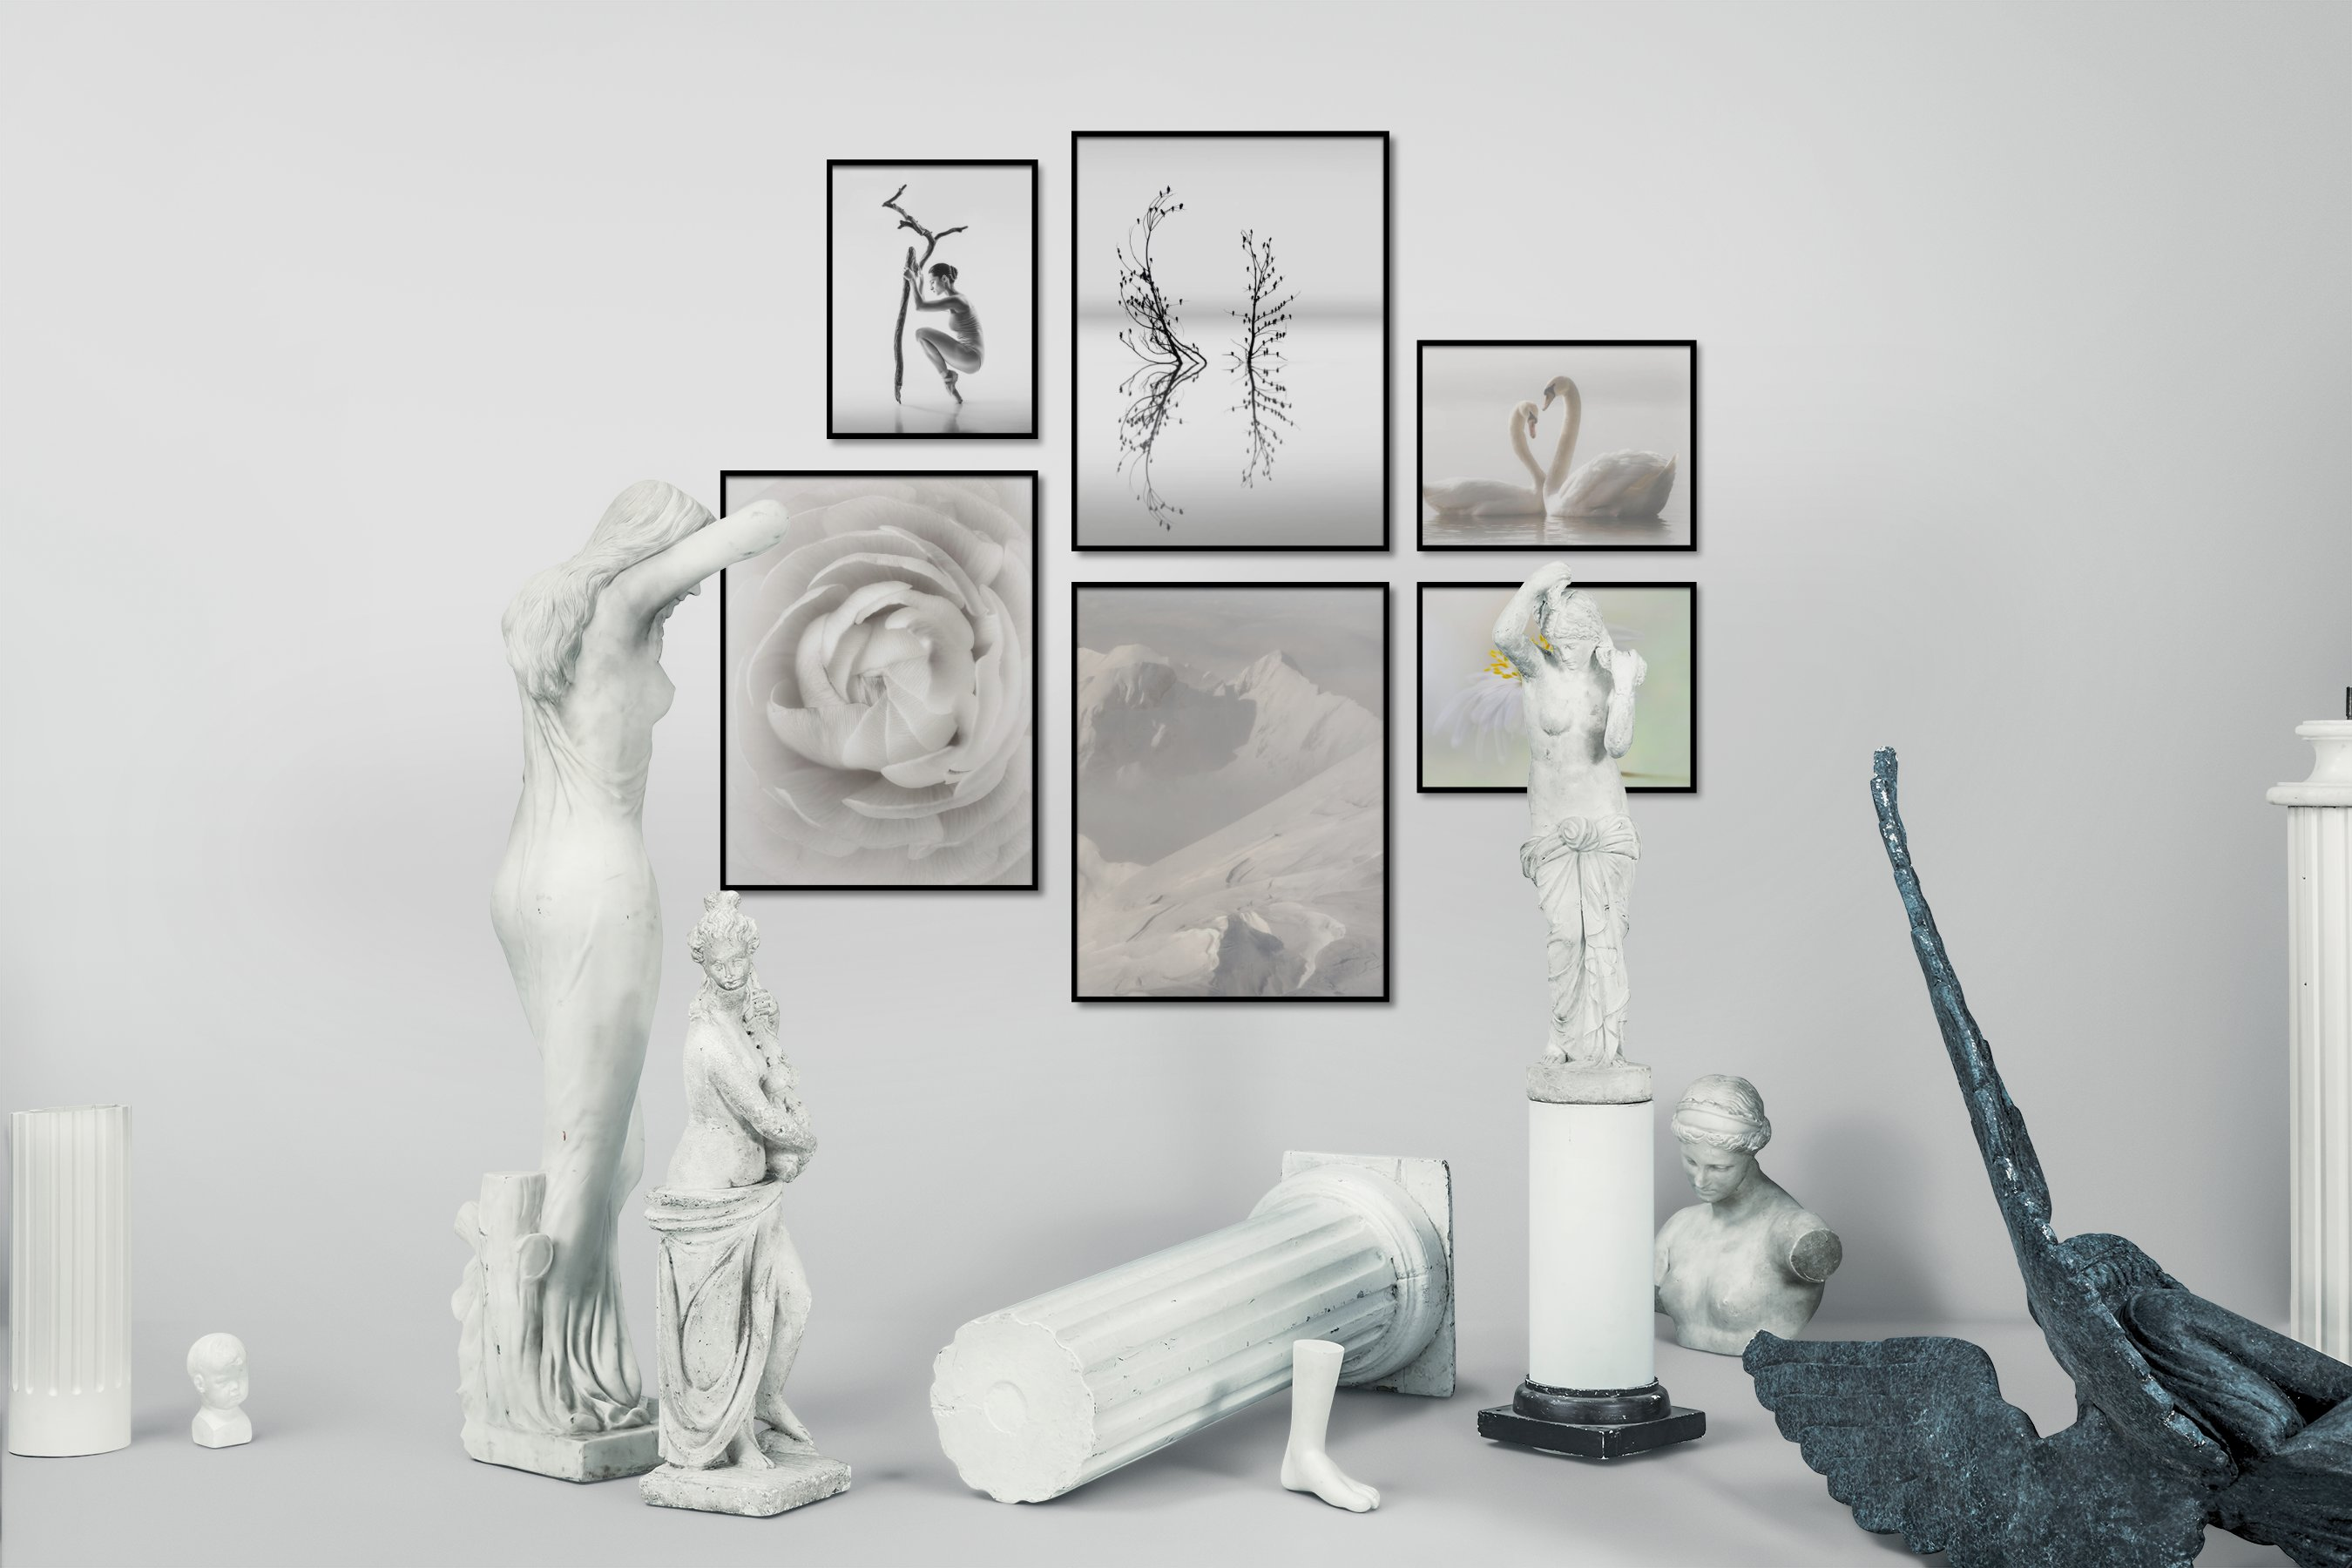 Gallery wall idea with six framed pictures arranged on a wall depicting Fashion & Beauty, Black & White, Bright Tones, For the Minimalist, Flowers & Plants, Mindfulness, For the Moderate, Nature, and Animals